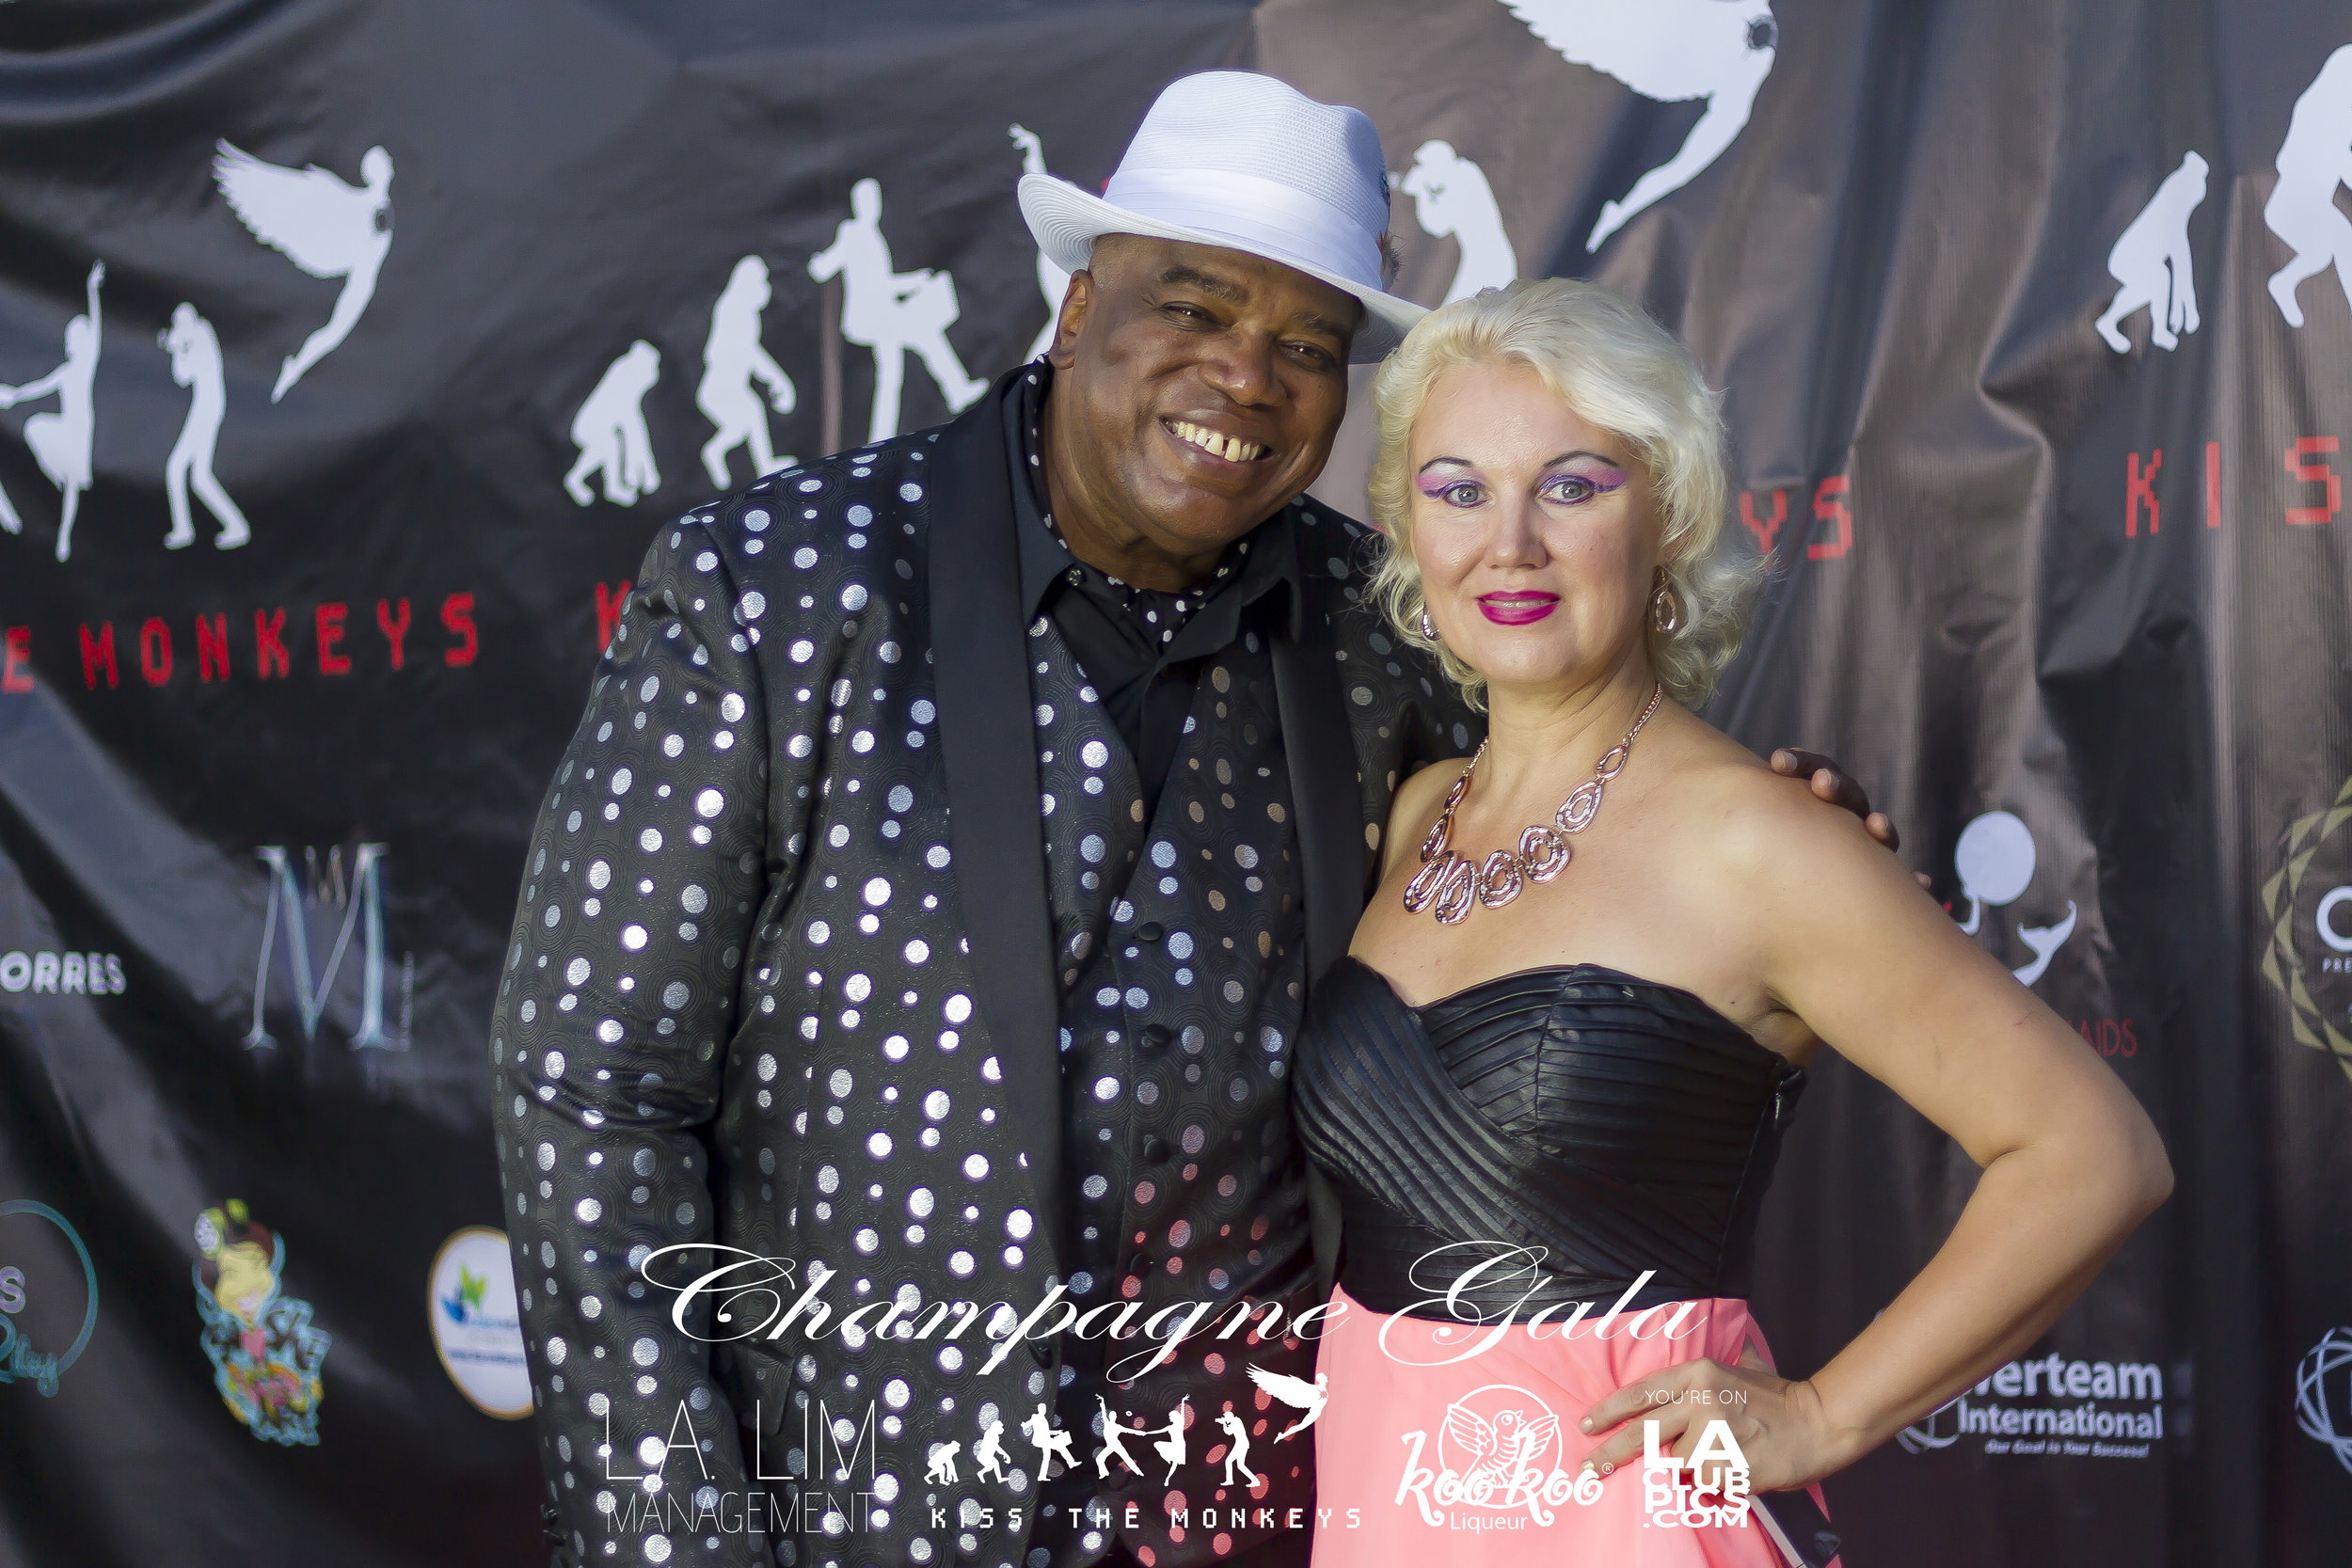 Kiss The Monkeys - Champagne Gala - 07-21-18_191.jpg